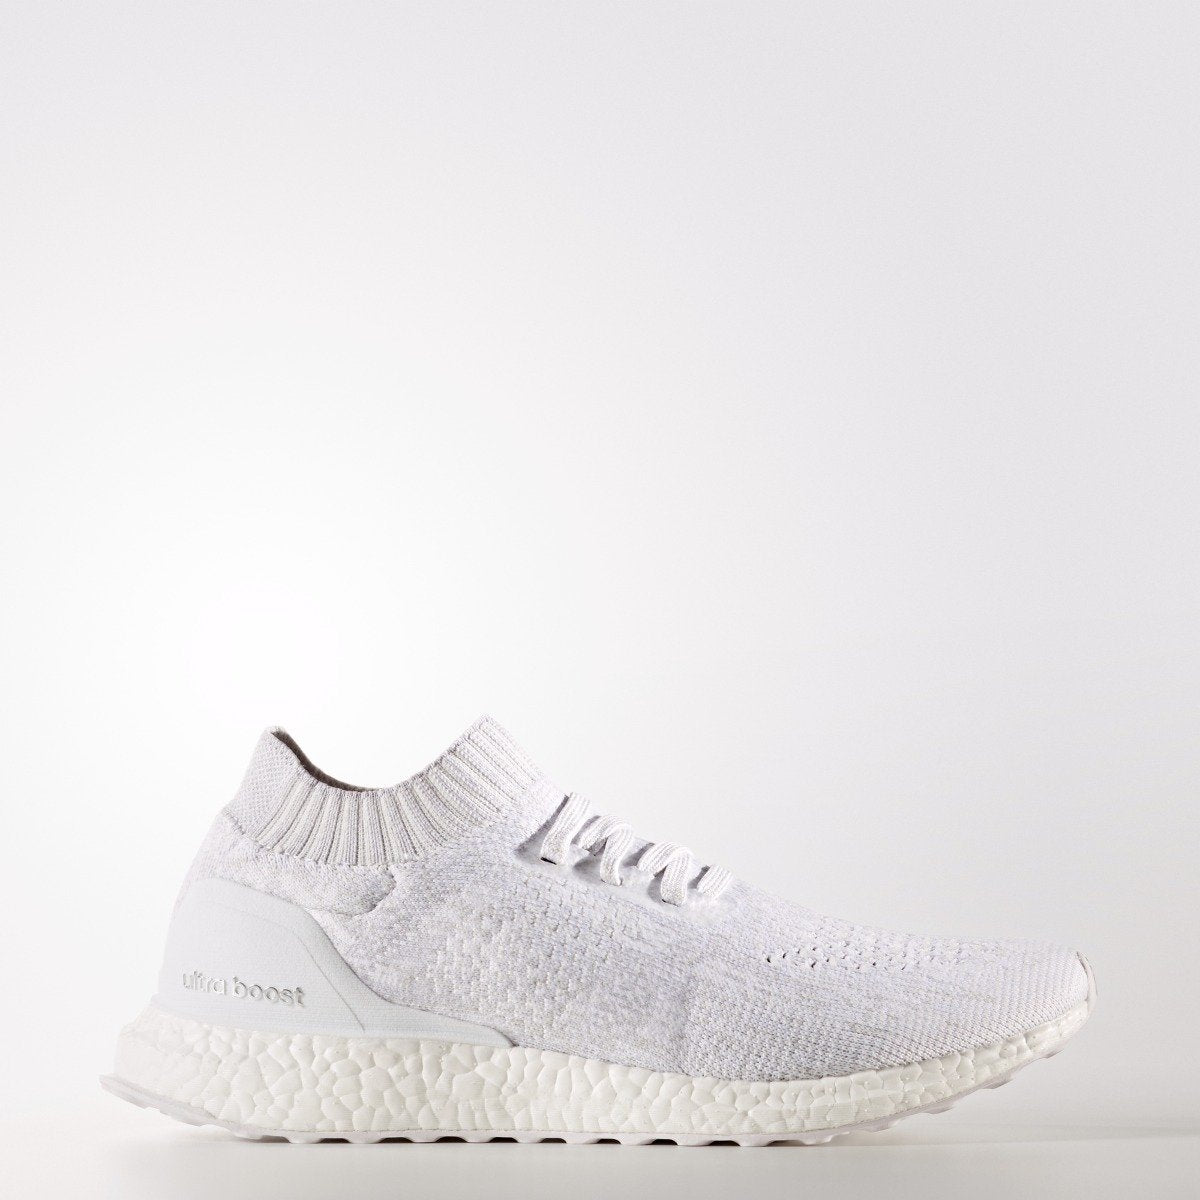 e72a31925 Men s adidas Running UltraBOOST Uncaged Shoes White.  126.00 Regular price   180.00. by ADIDAS